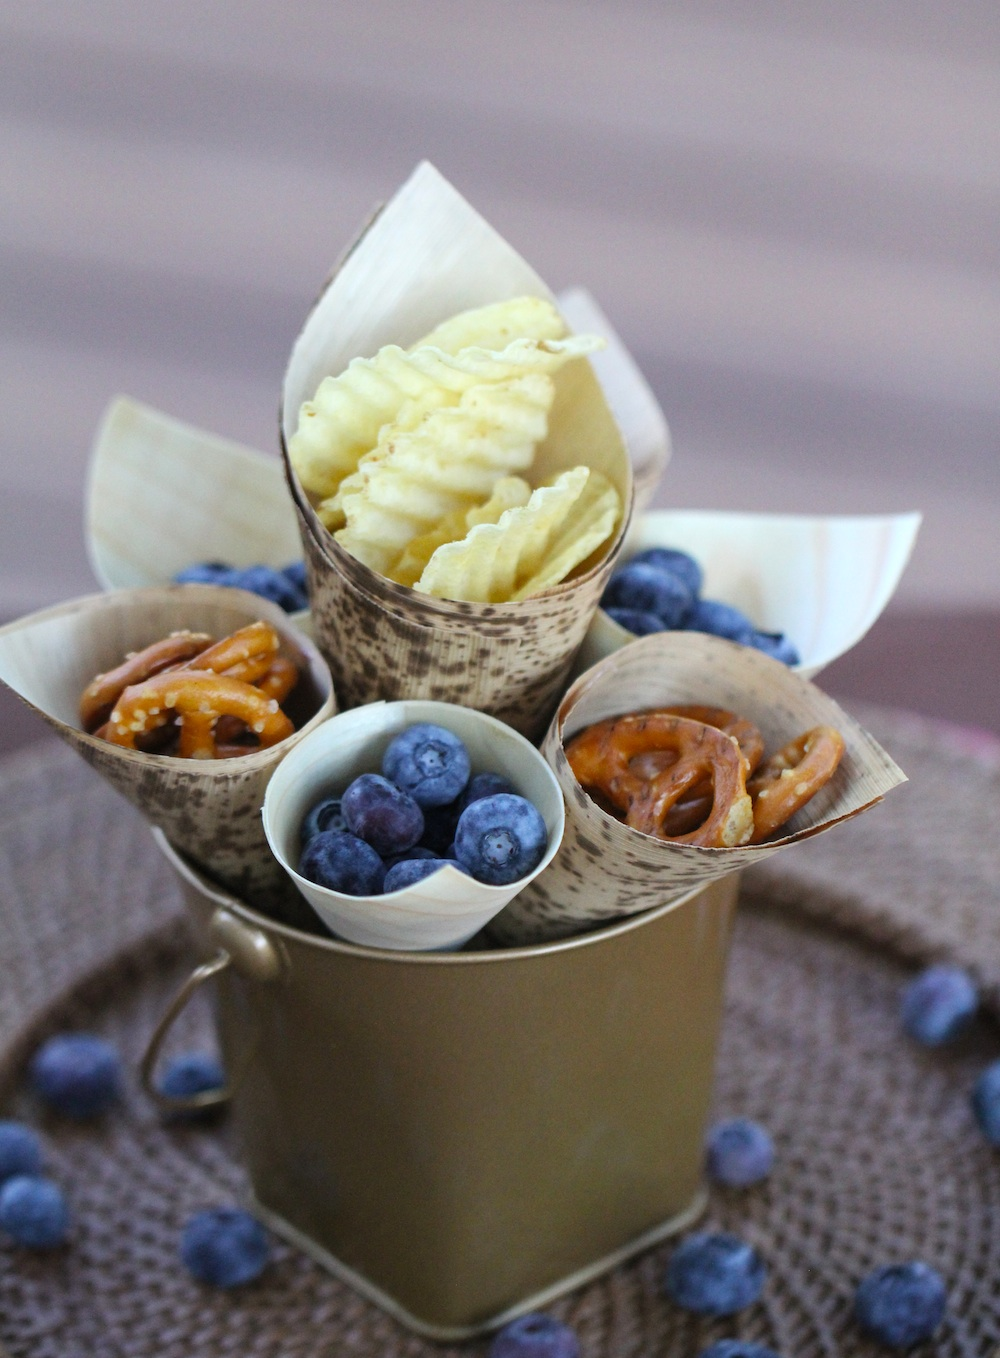 Treat Your Guests to Snacks and/or Appetizers in Bamboo Cones - #ecofriendly Food Presentation Idea